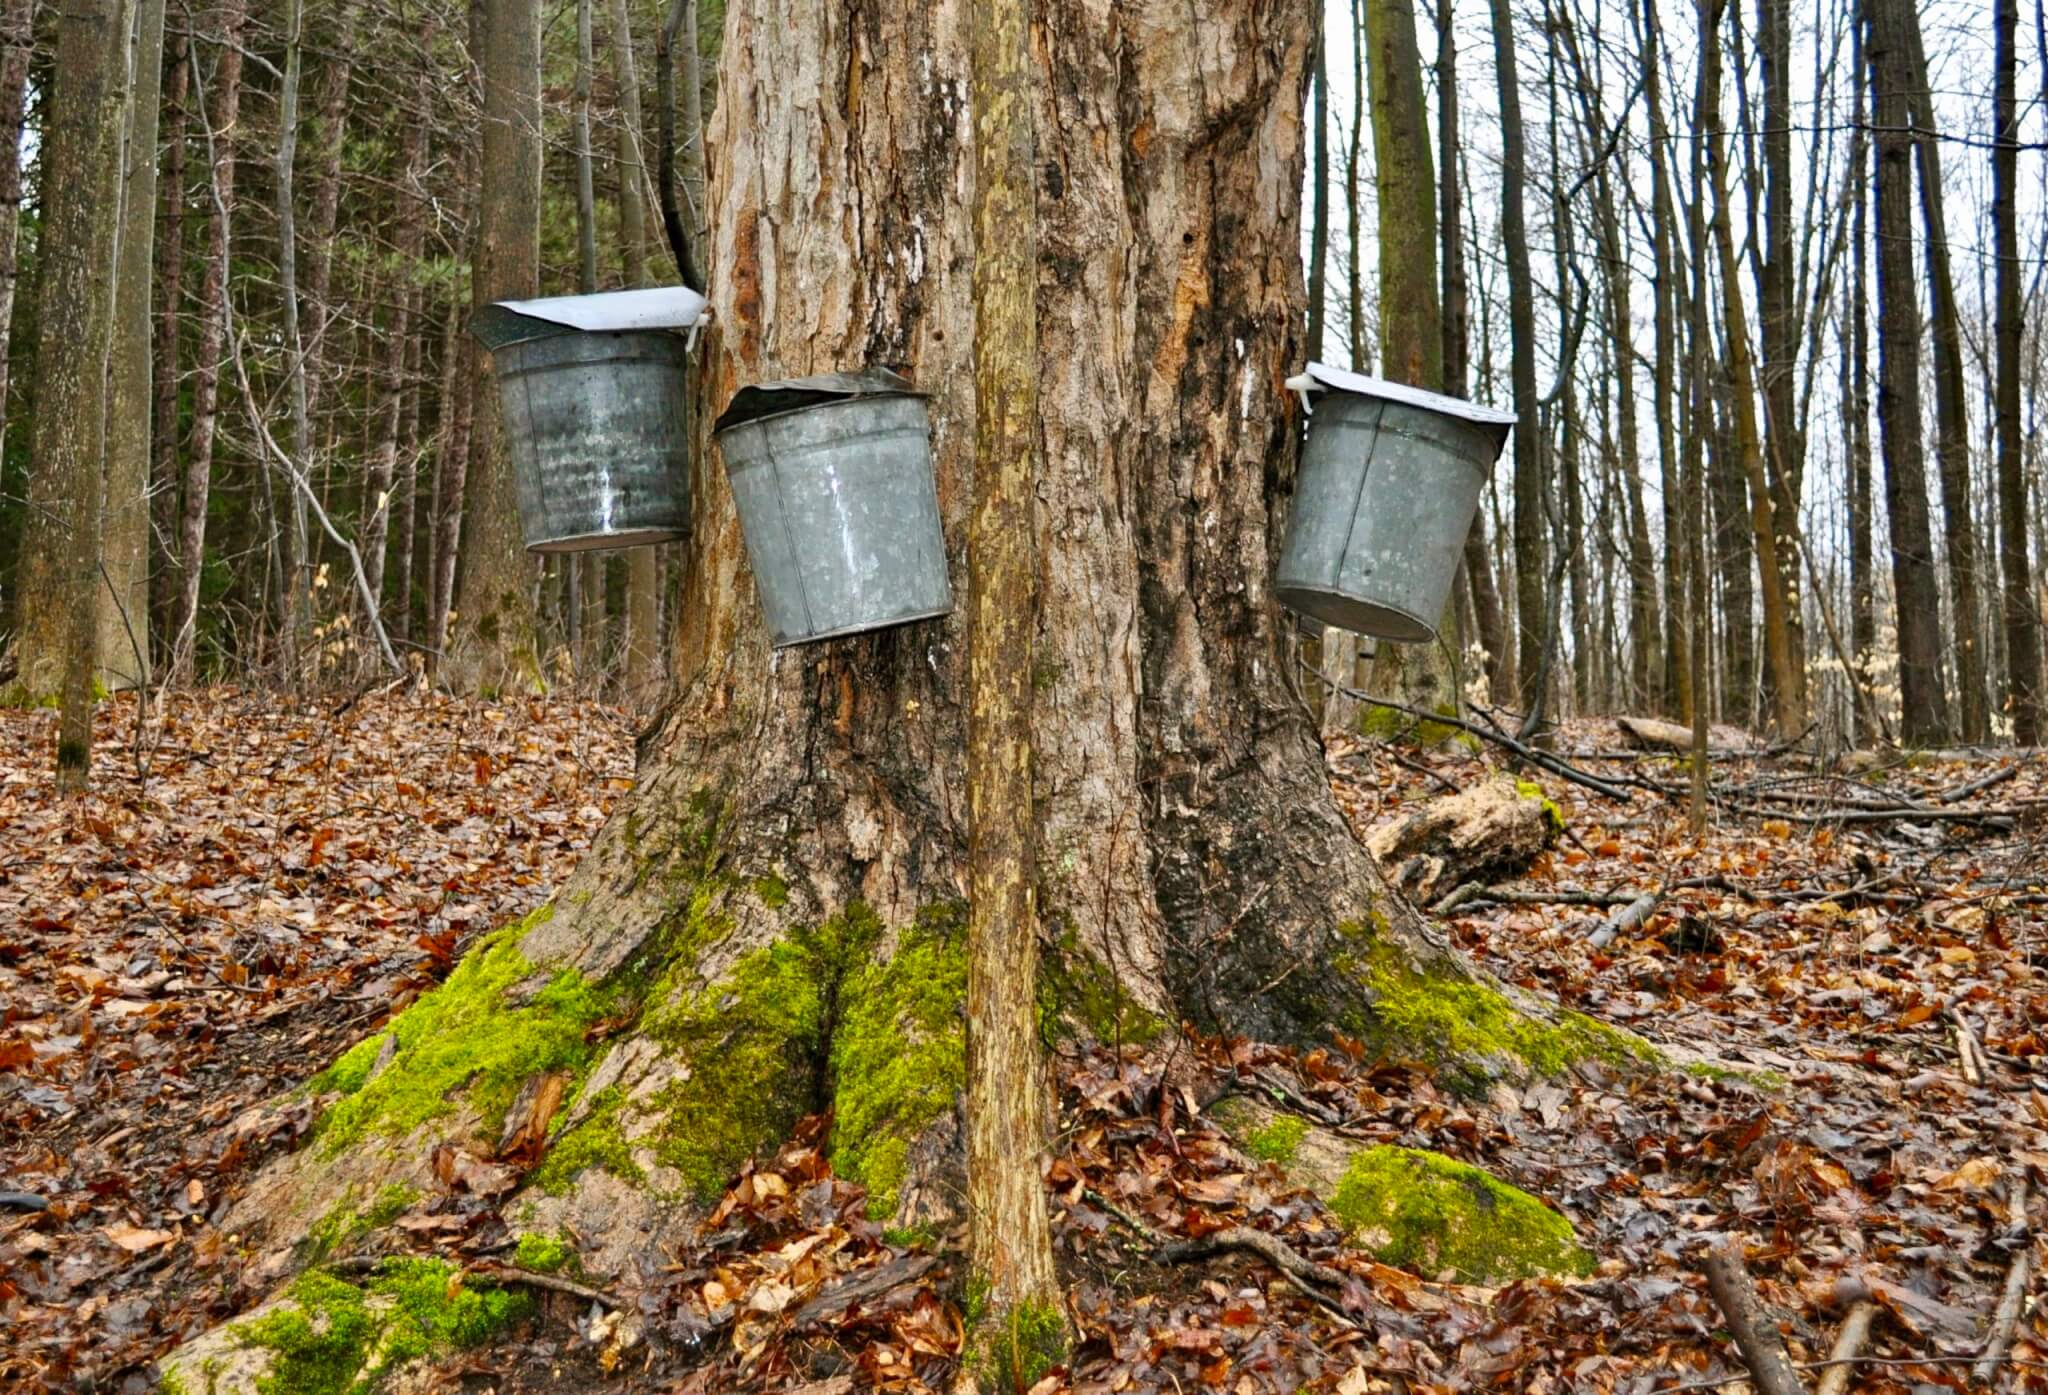 """Early every spring, on a family farm in Lander, Pennsylvania, friends of ours engage in the annual tradition of """"sugaring."""" The labor of love requires hand-drilling their Maple trees, removing hundreds of gallons of sap, boiling it down, to be rewarded with a sweet, sticky condiment that goes far beyond pancakes."""